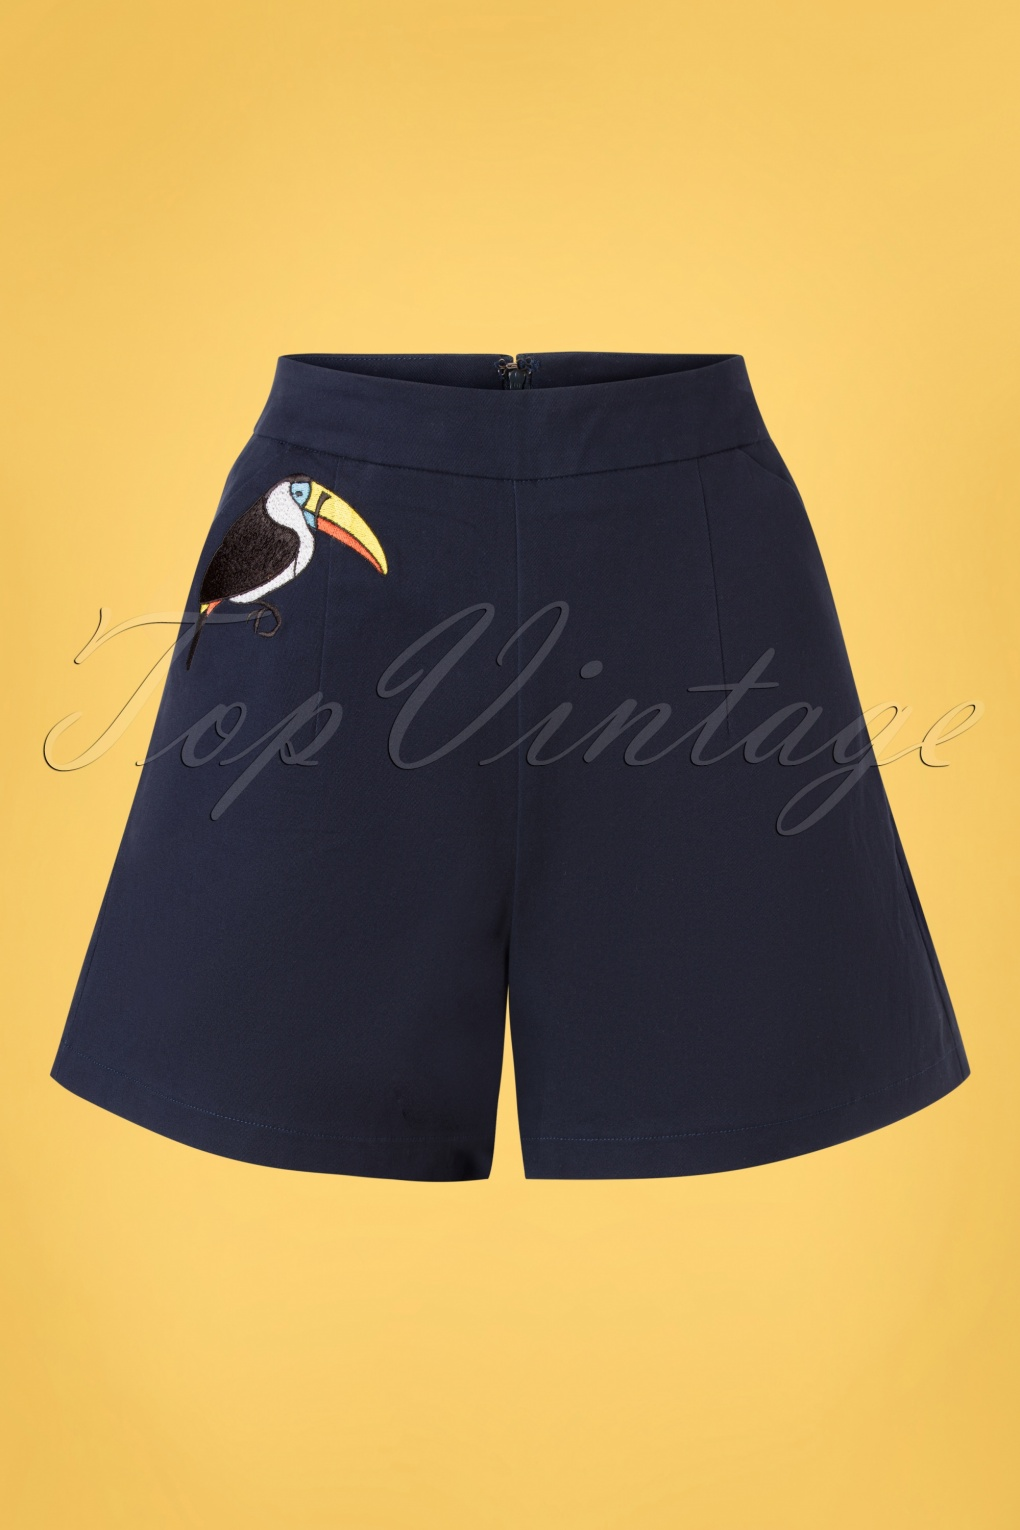 1950s Pinup Shorts, Retro Shorts 50s Toucan Shorts in Navy £34.37 AT vintagedancer.com